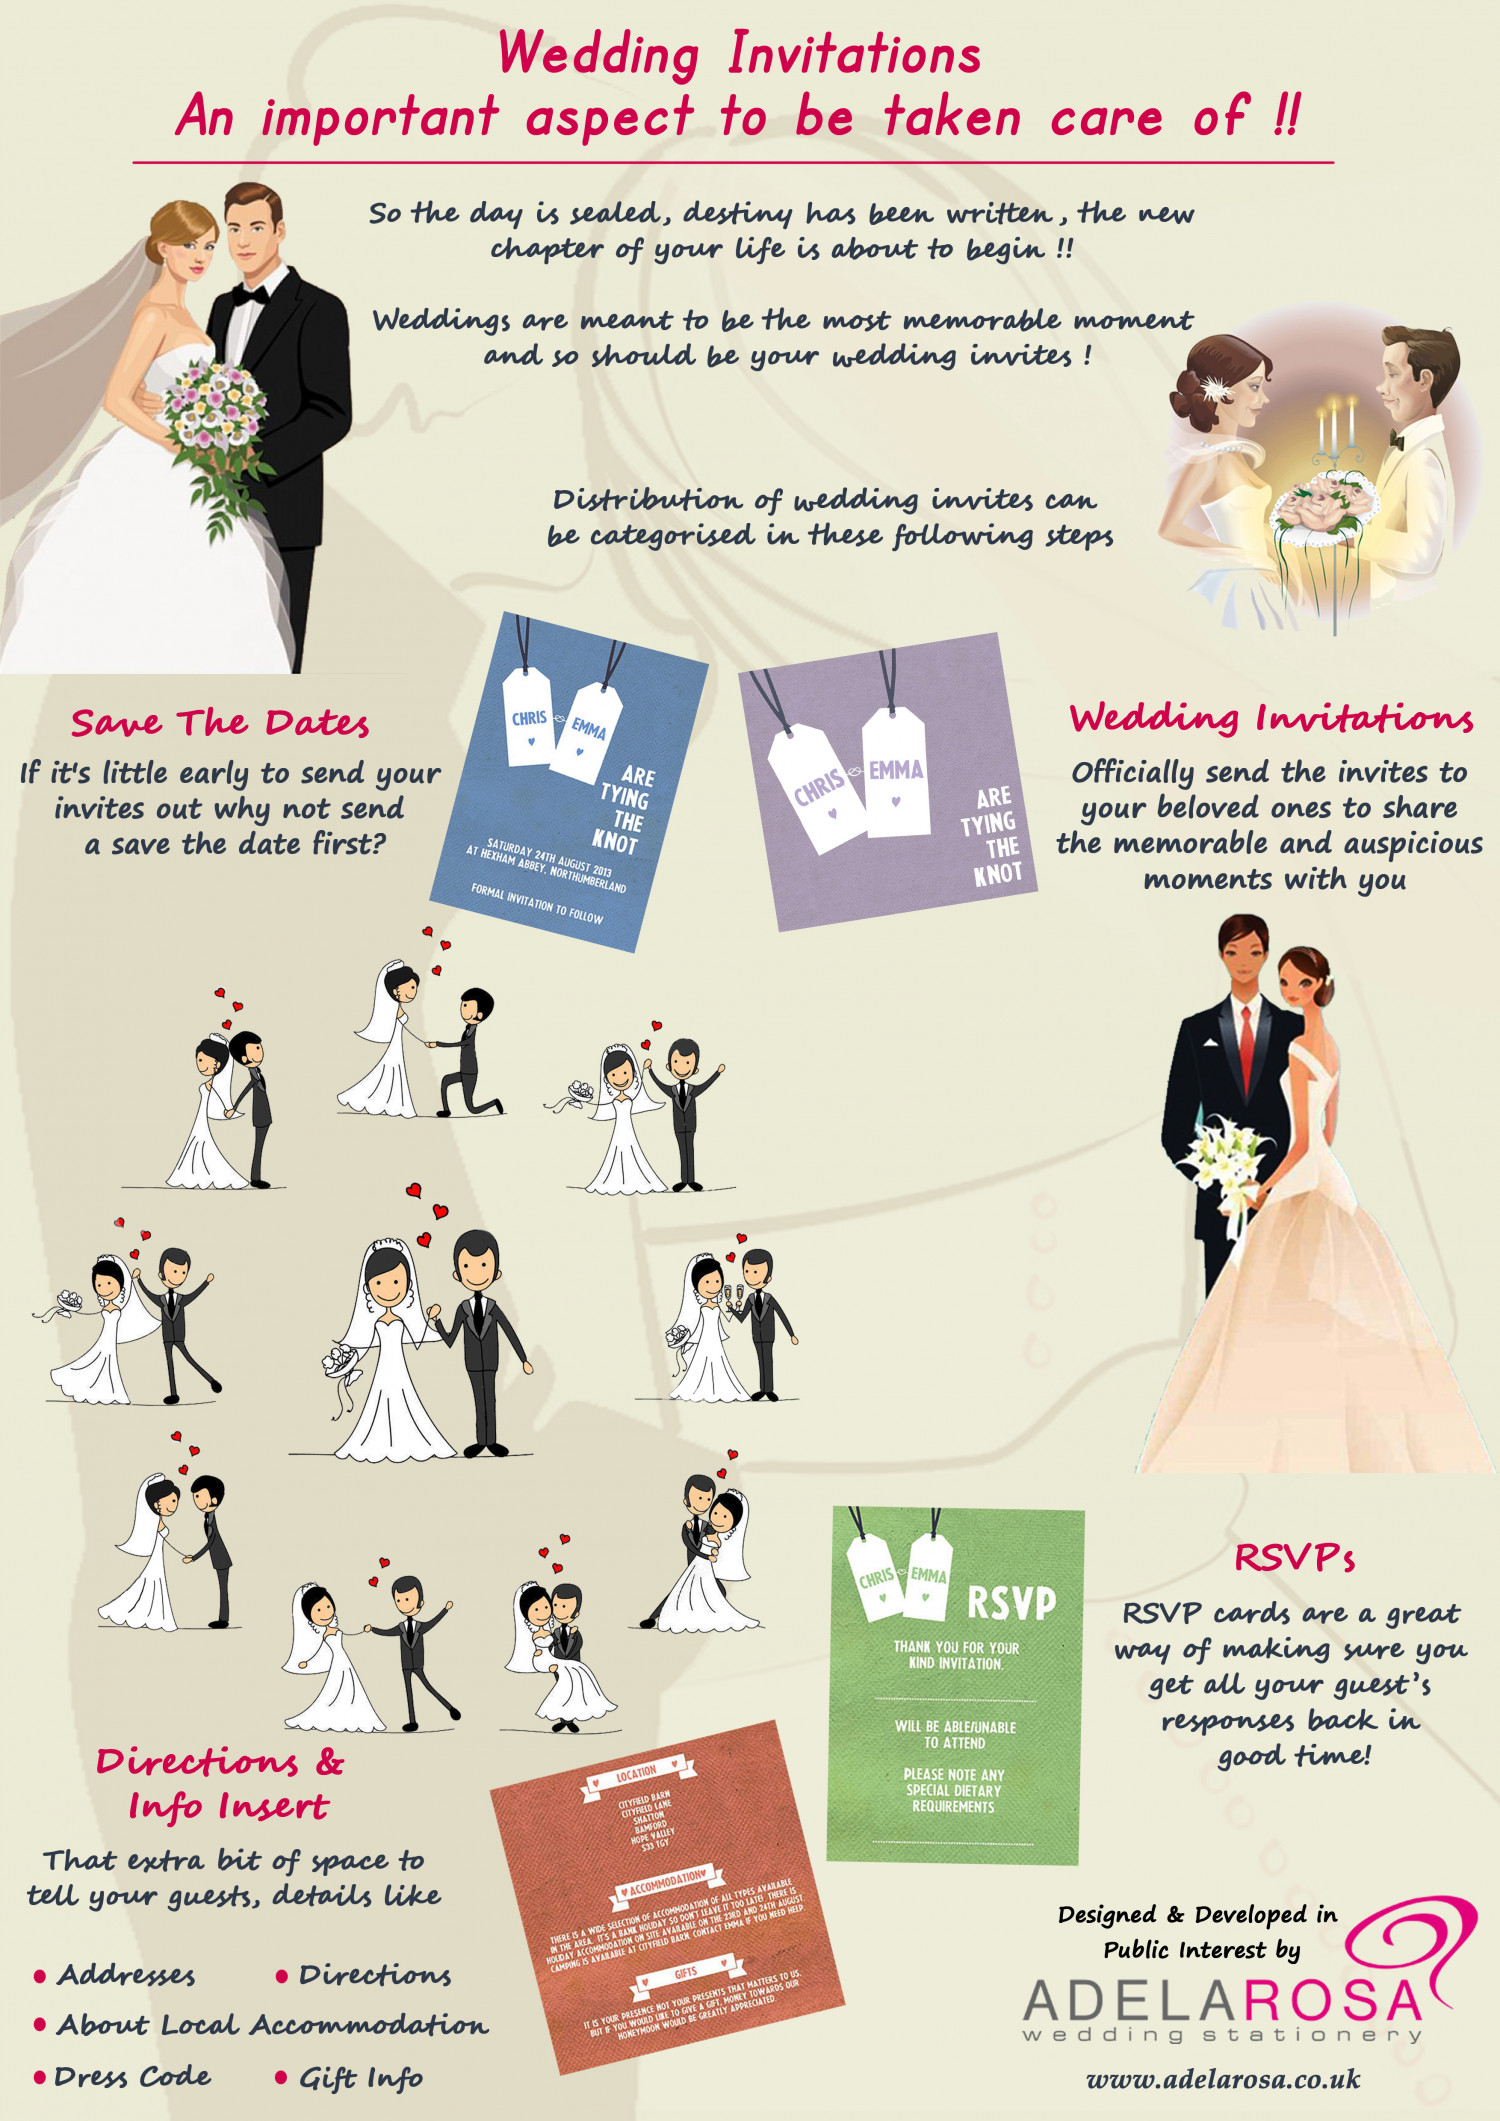 Wedding Invitations: An Important Aspect To Be Taken Care Of Infographic